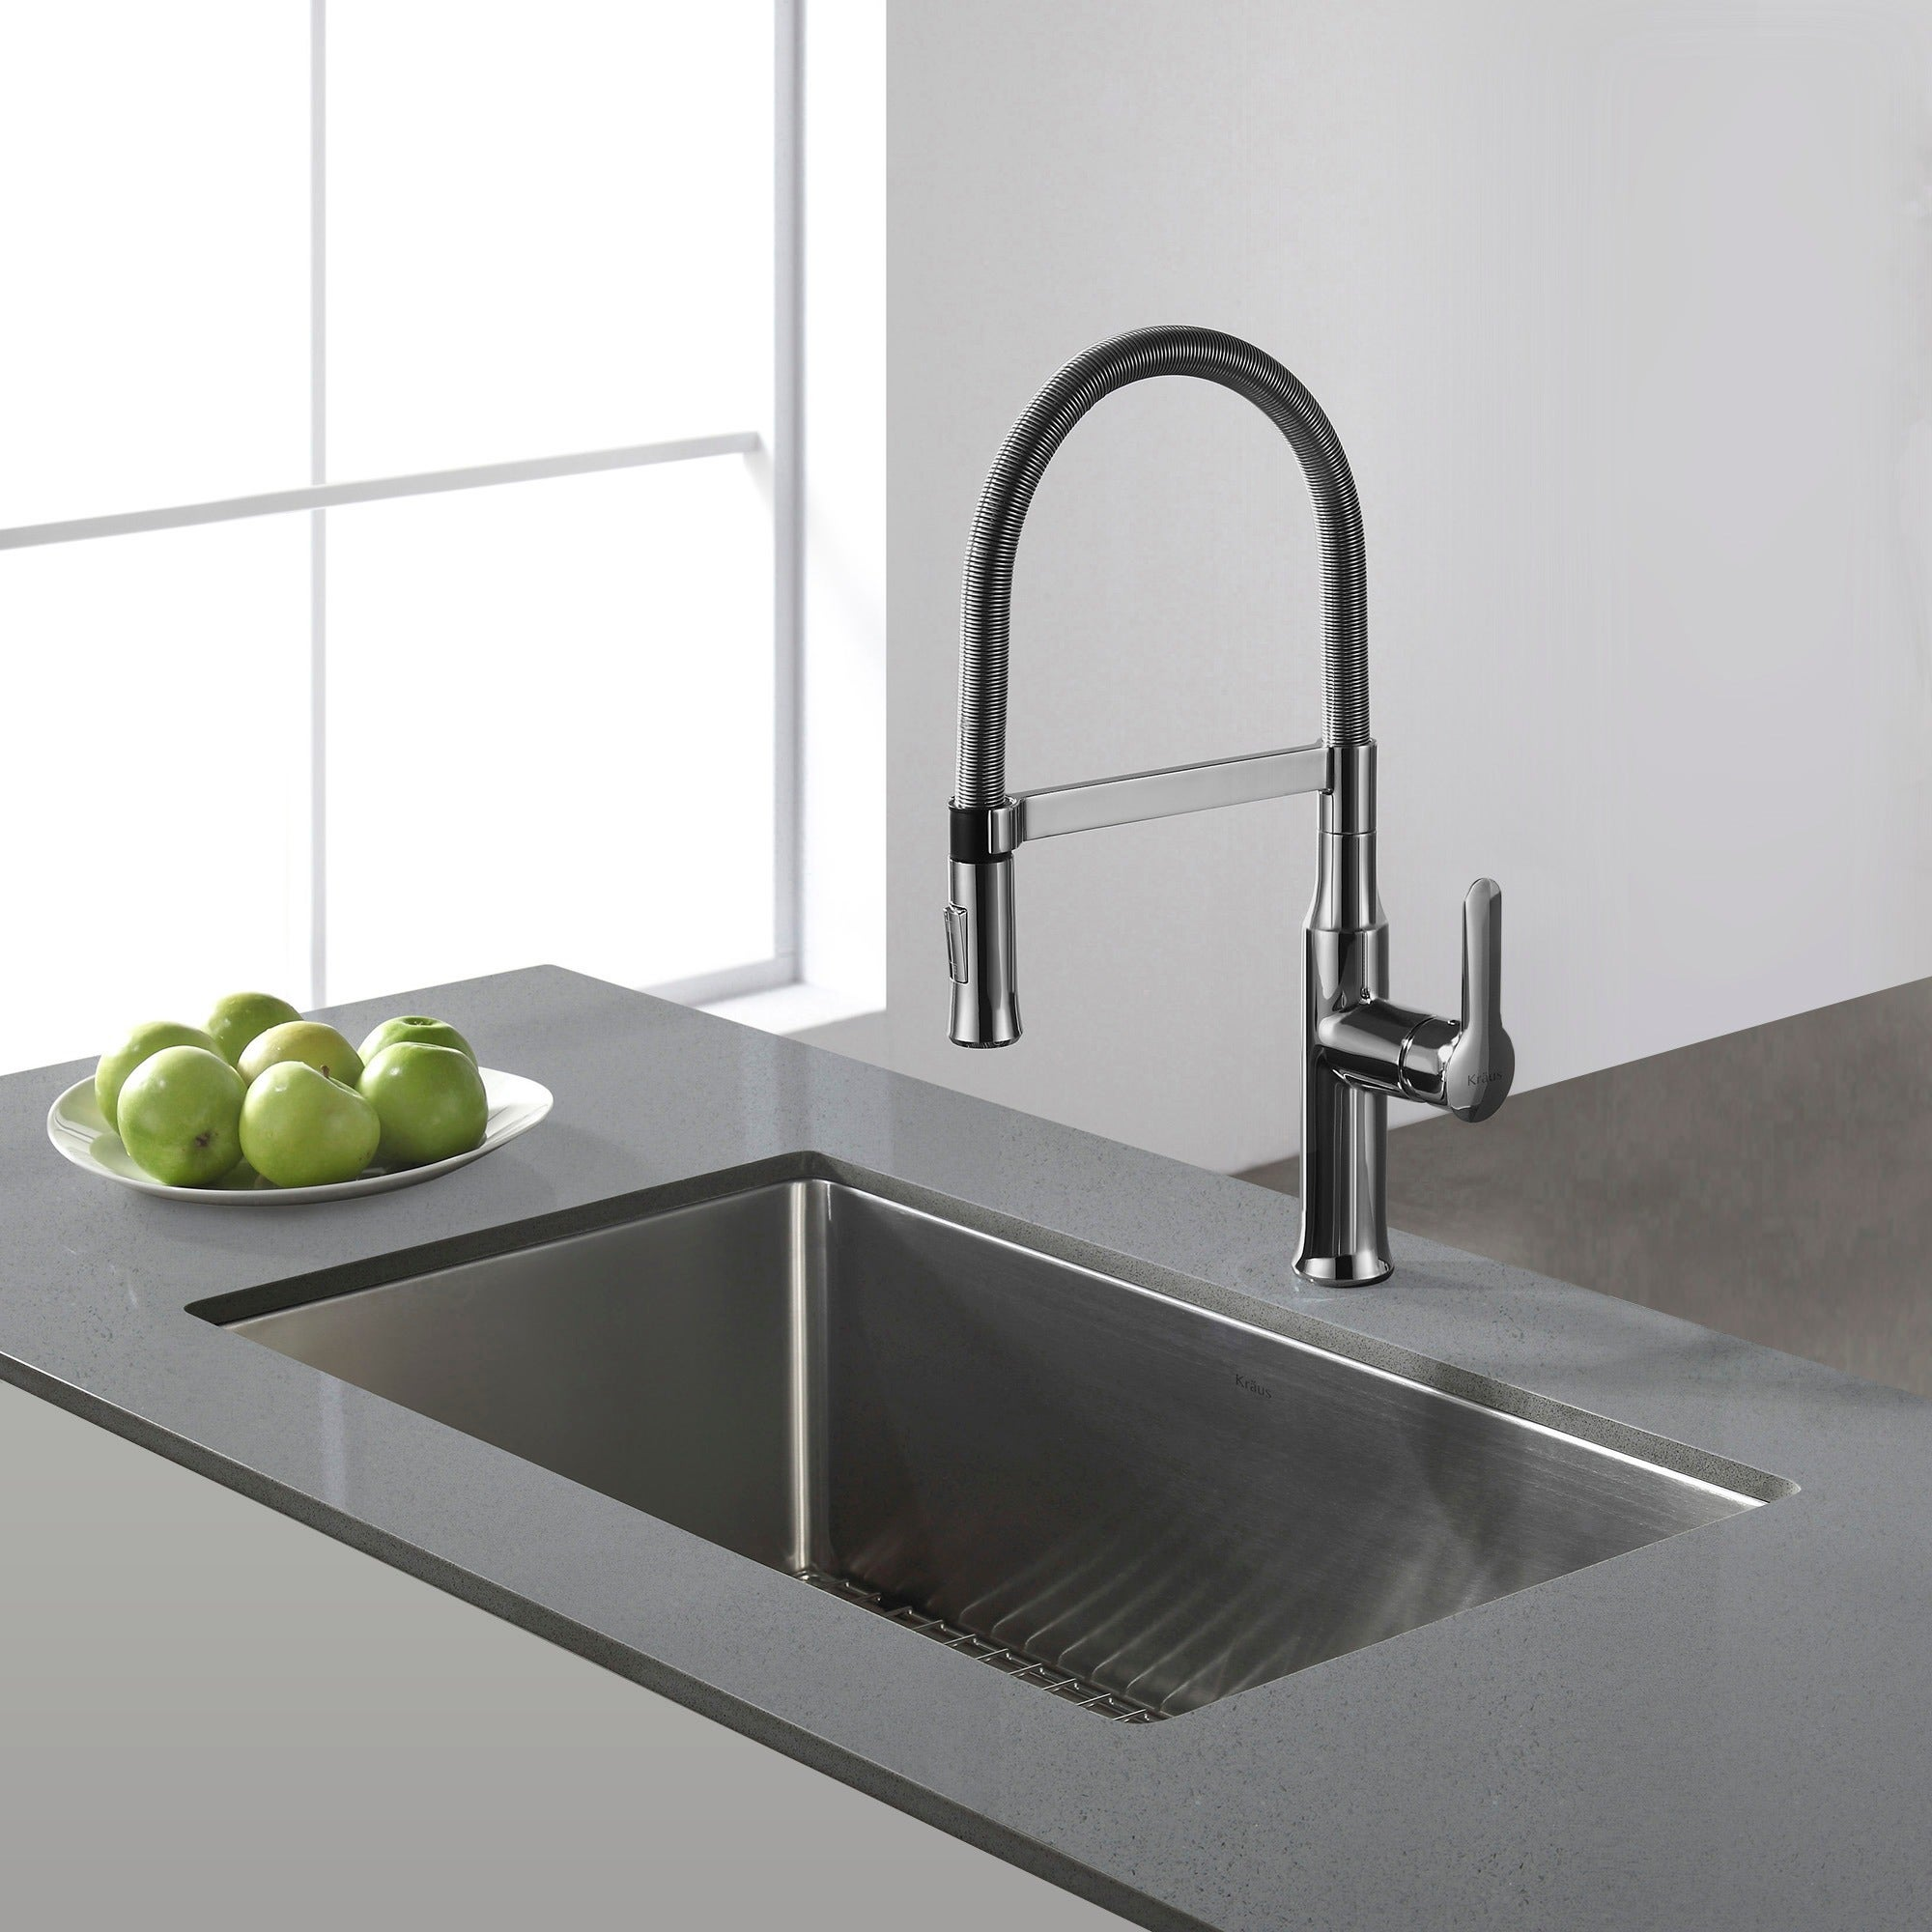 Shop Kraus KHU100 30 Standart PRO Undermount 30 Inch 16 Gauge Single Bowl  Satin Stainless Steel Kitchen Sink   Free Shipping Today   Overstock.com    3381330